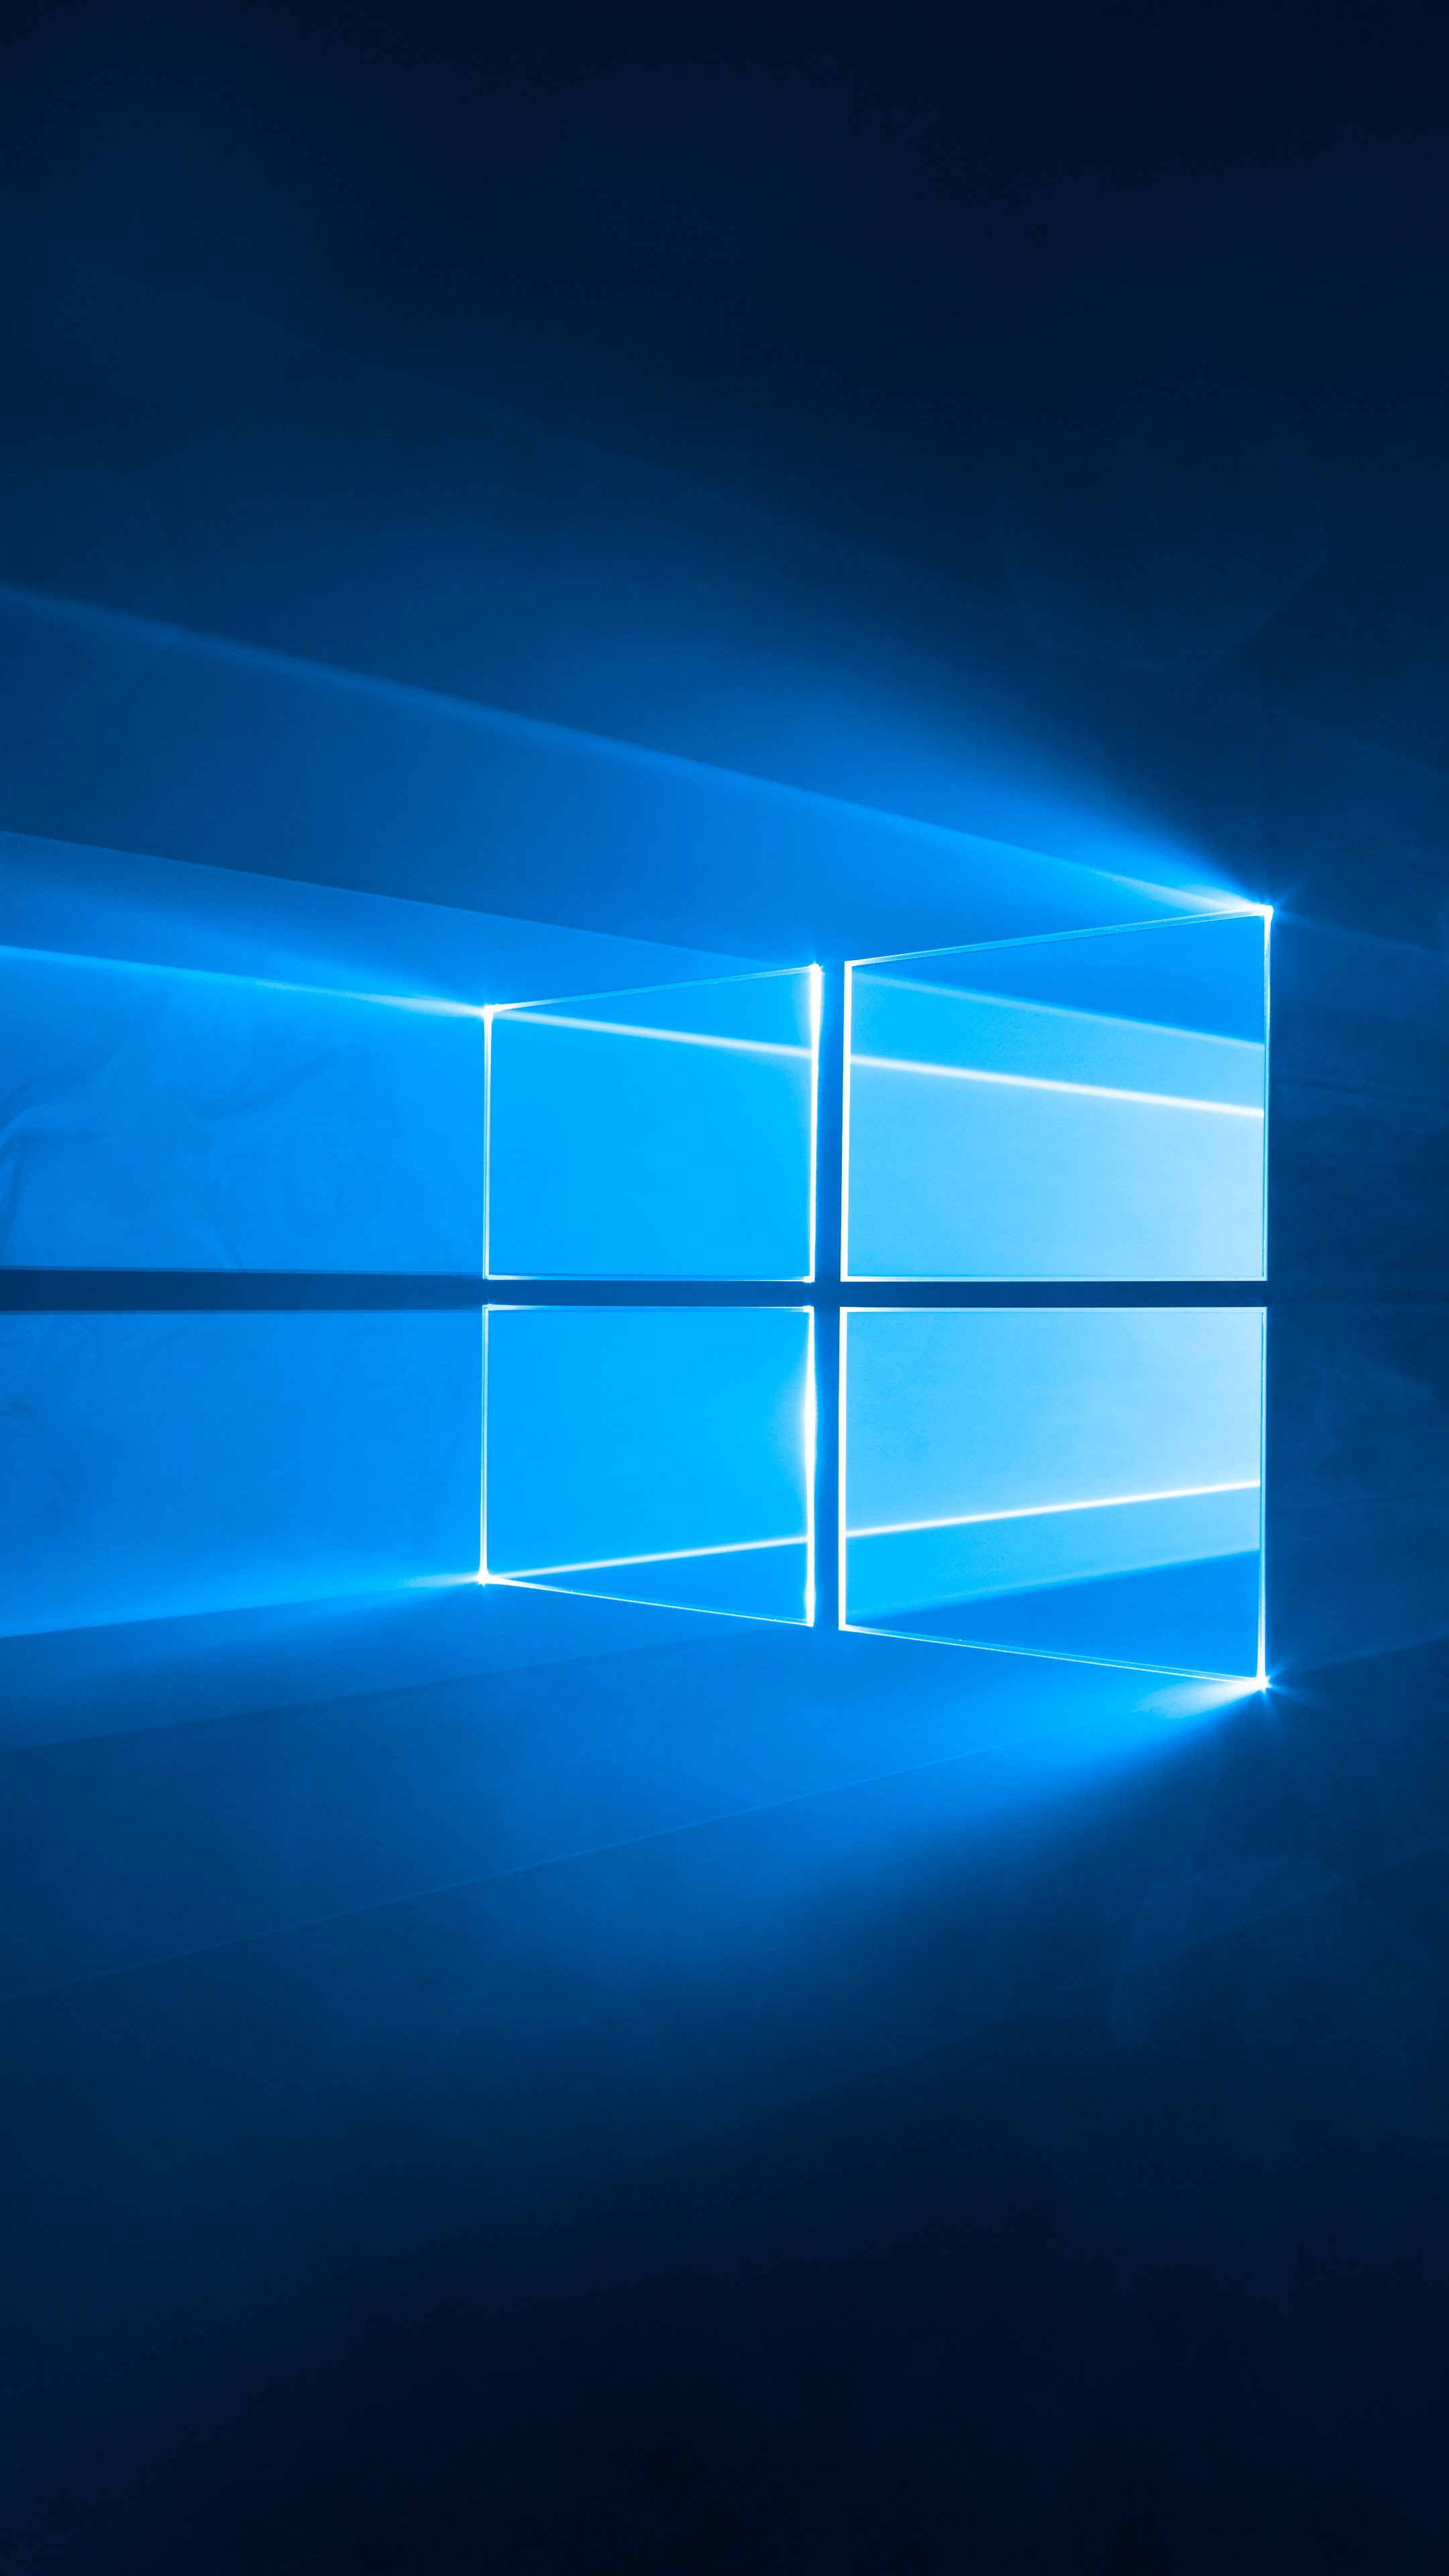 Windows 10 wallpaper 2160x3840 767668 wallpaperup - 2160x3840 wallpaper ...